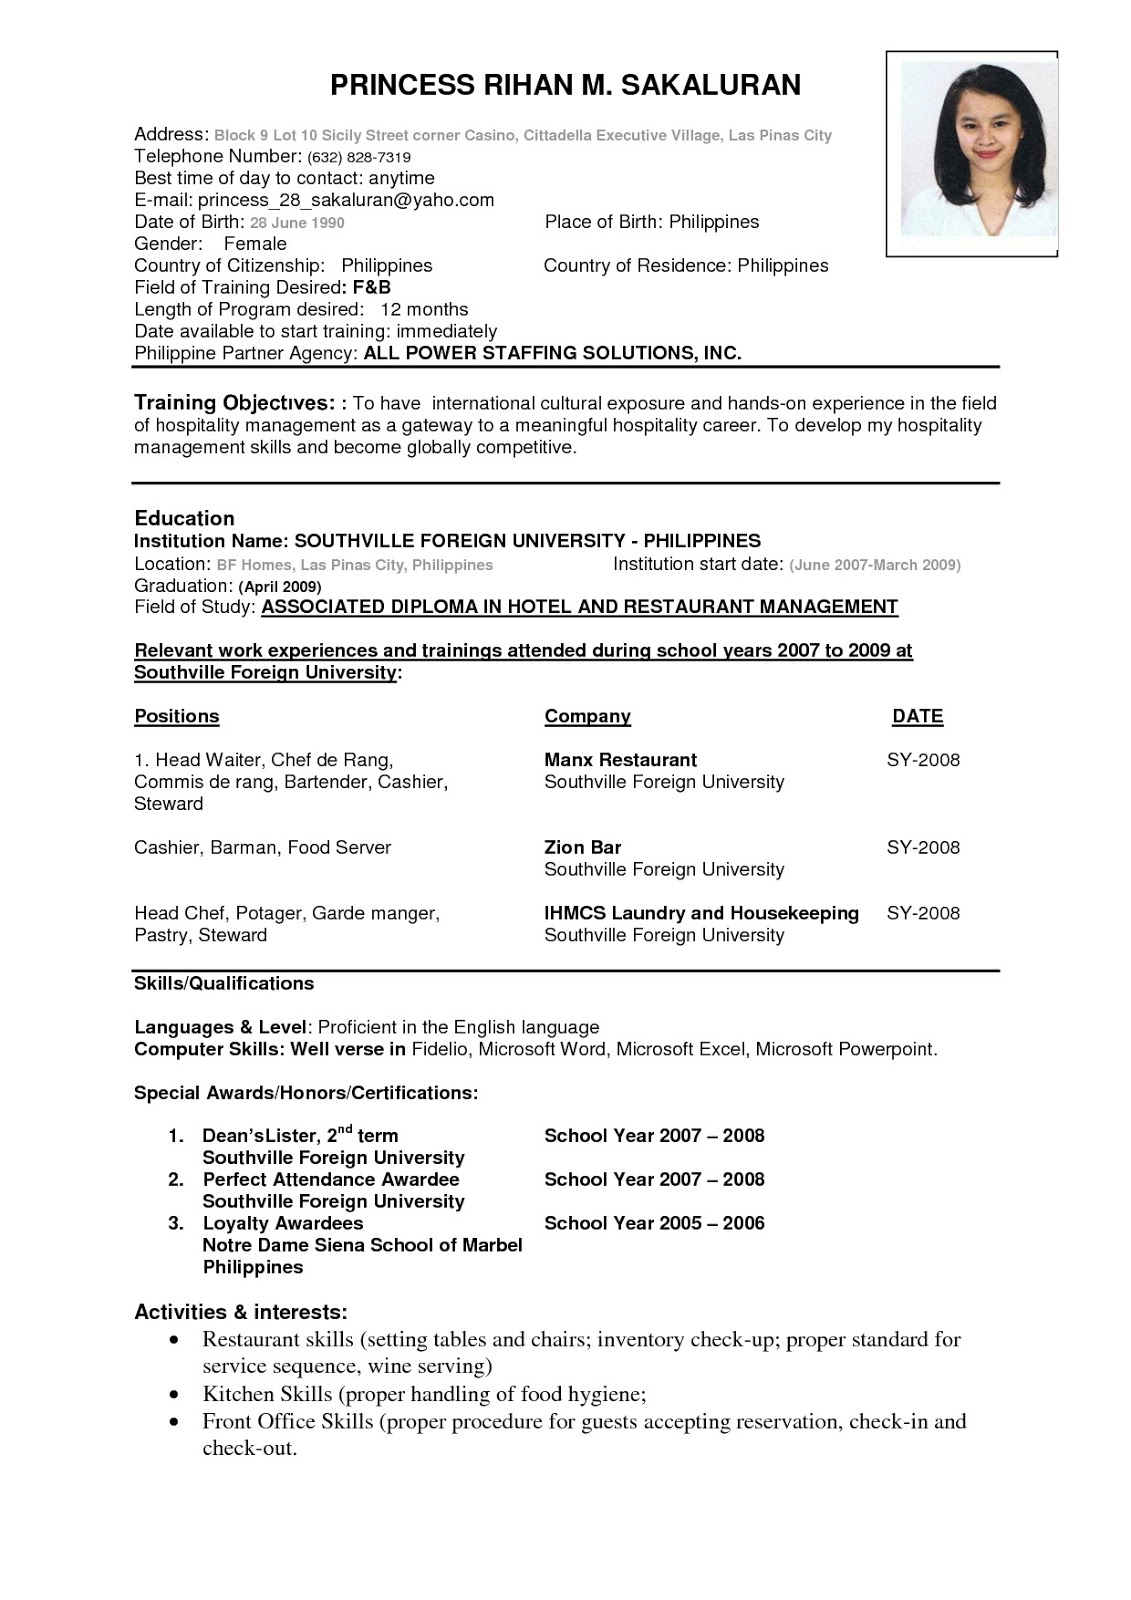 resume example resume for ojt business administration students sample resume for ojt office management students frizzigame - Resume Formats For Students